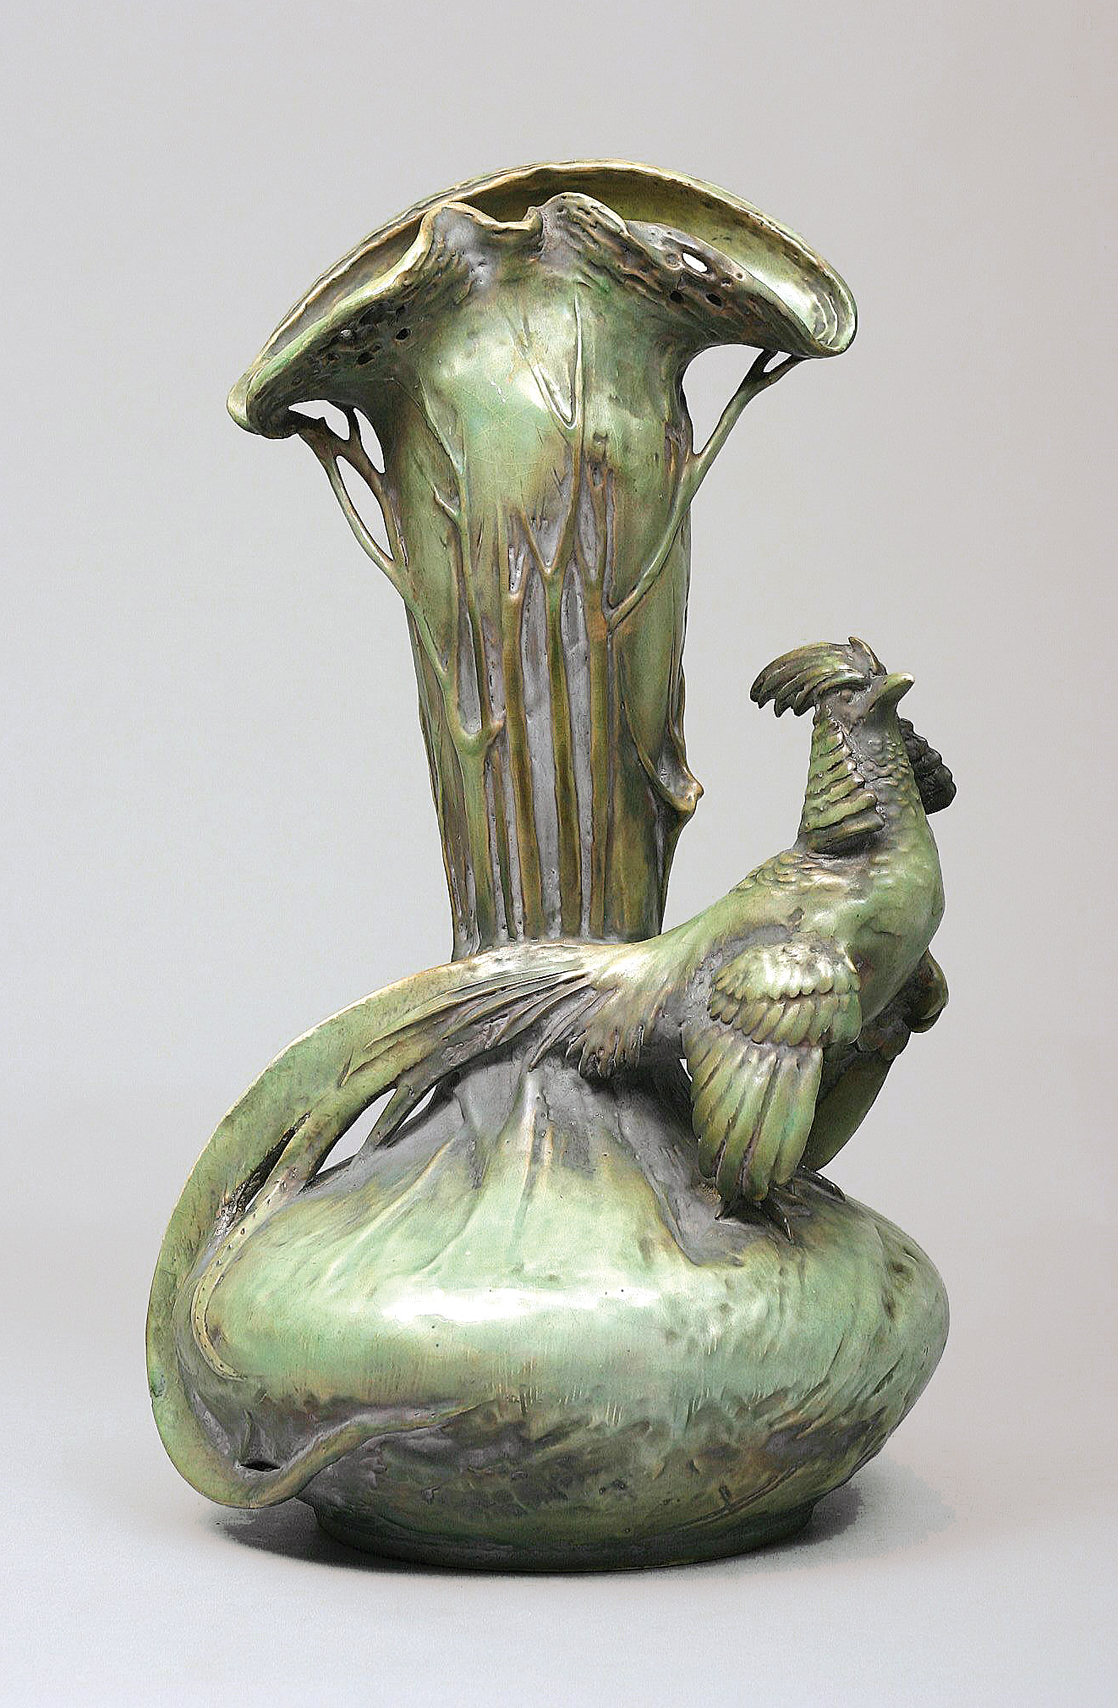 A large amphora vase with gold pheasant